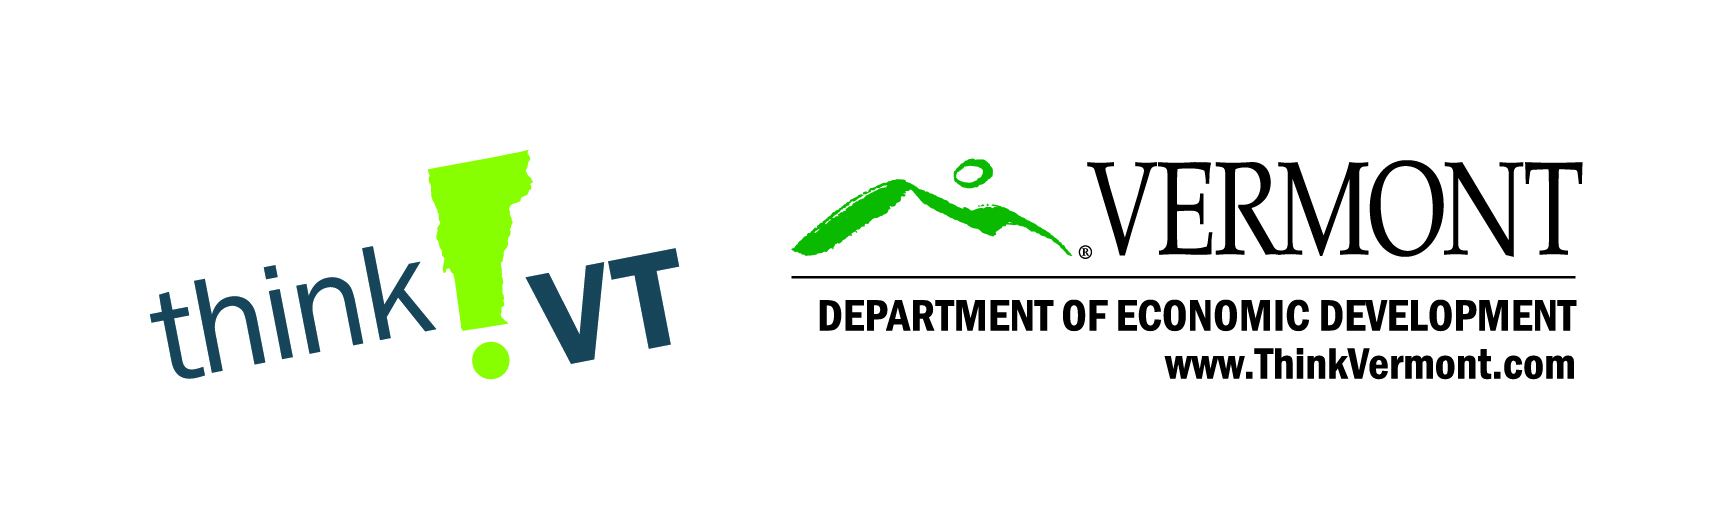 Vermont Department of Economic Development